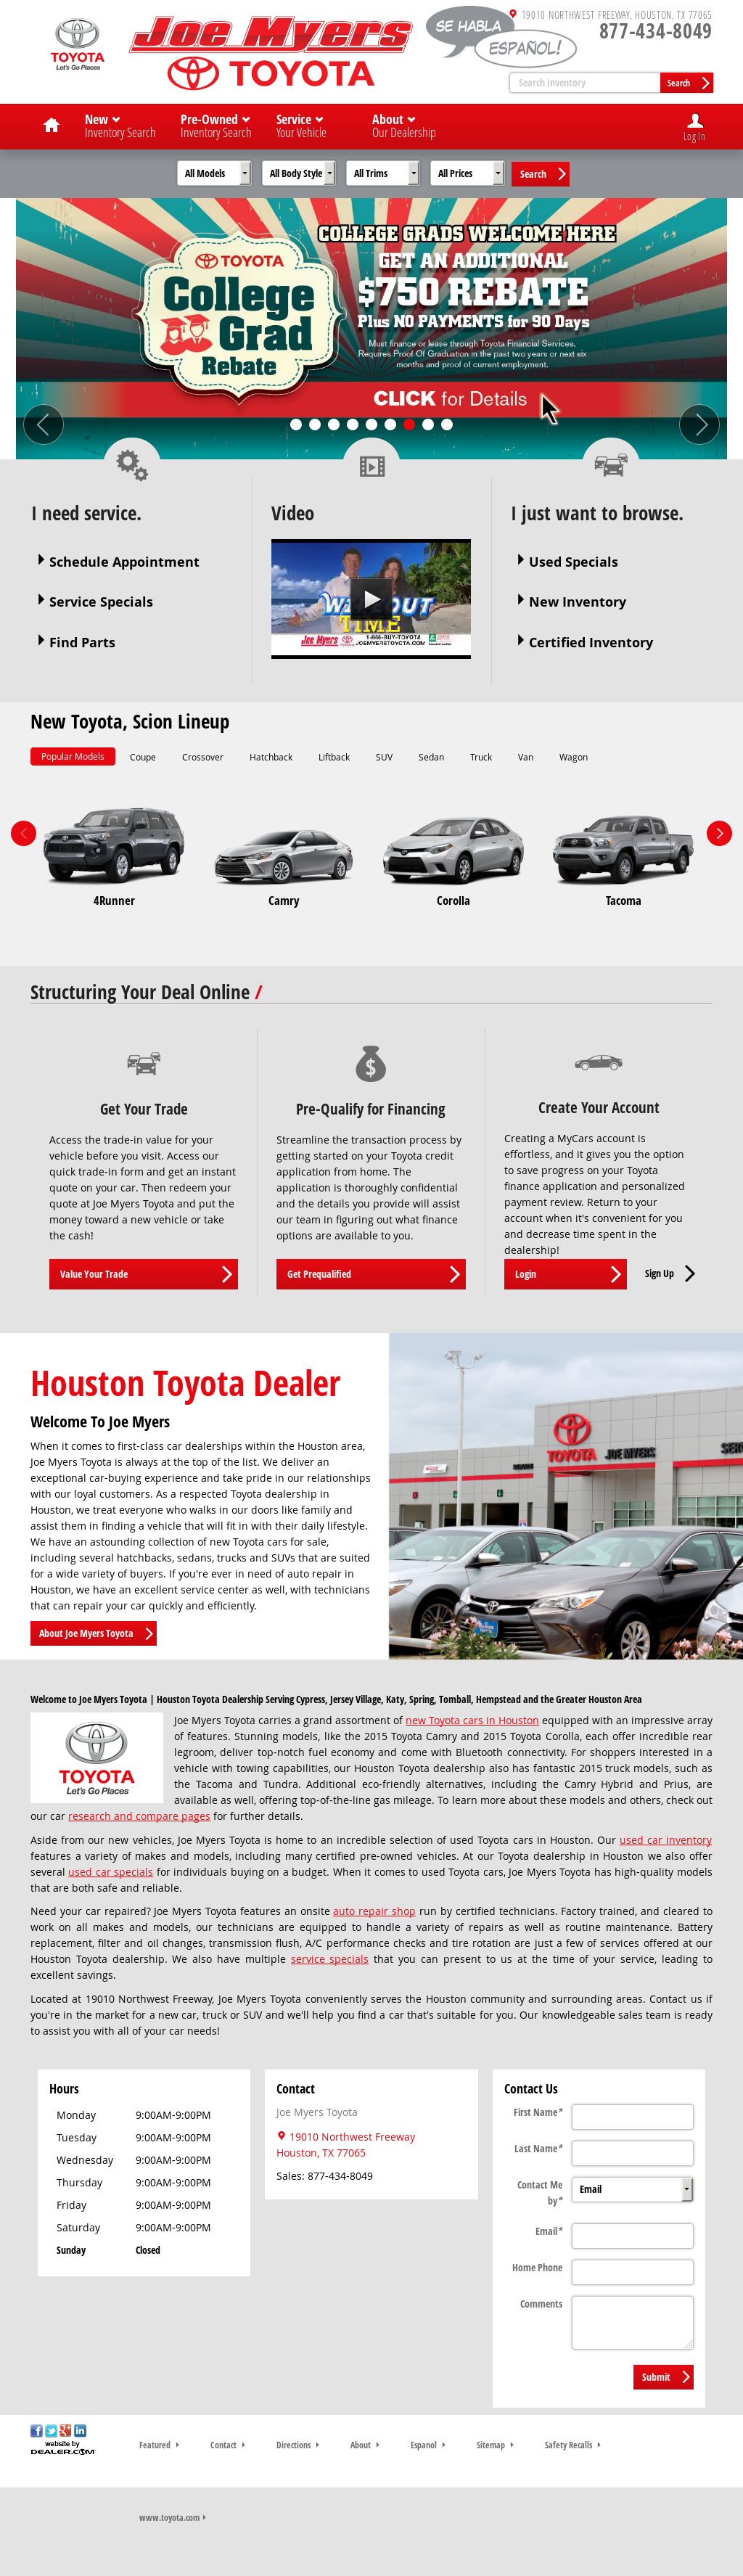 Joe Myers Toyota Competitors, Revenue And Employees   Owler Company Profile